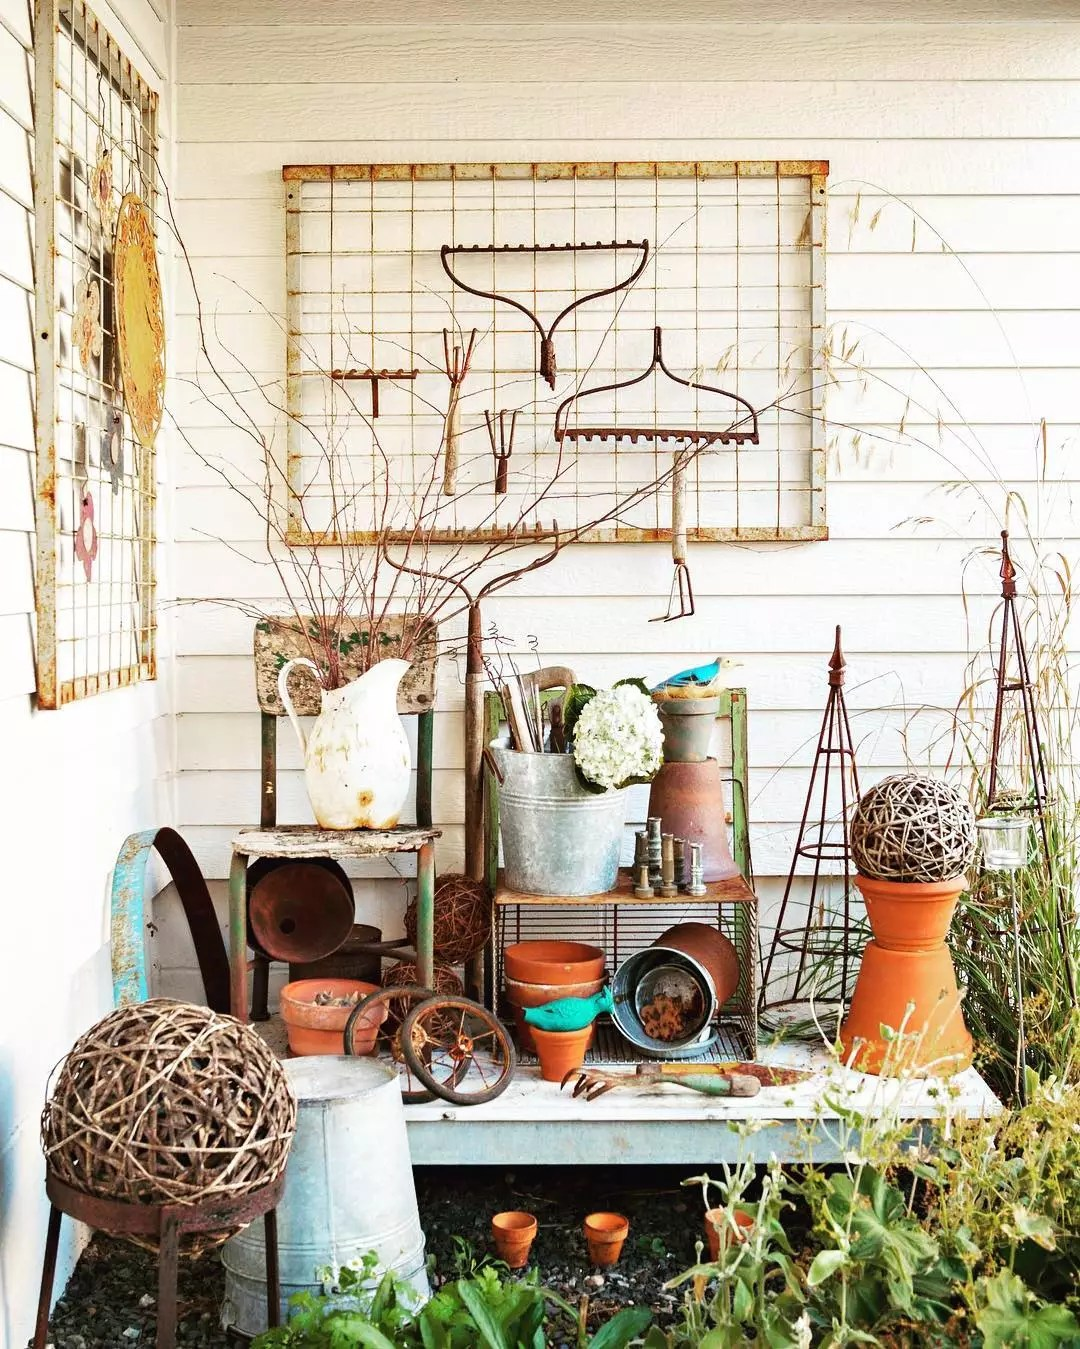 old gardening tools used as decorations photo by Instagram user @cottagesandbungalows